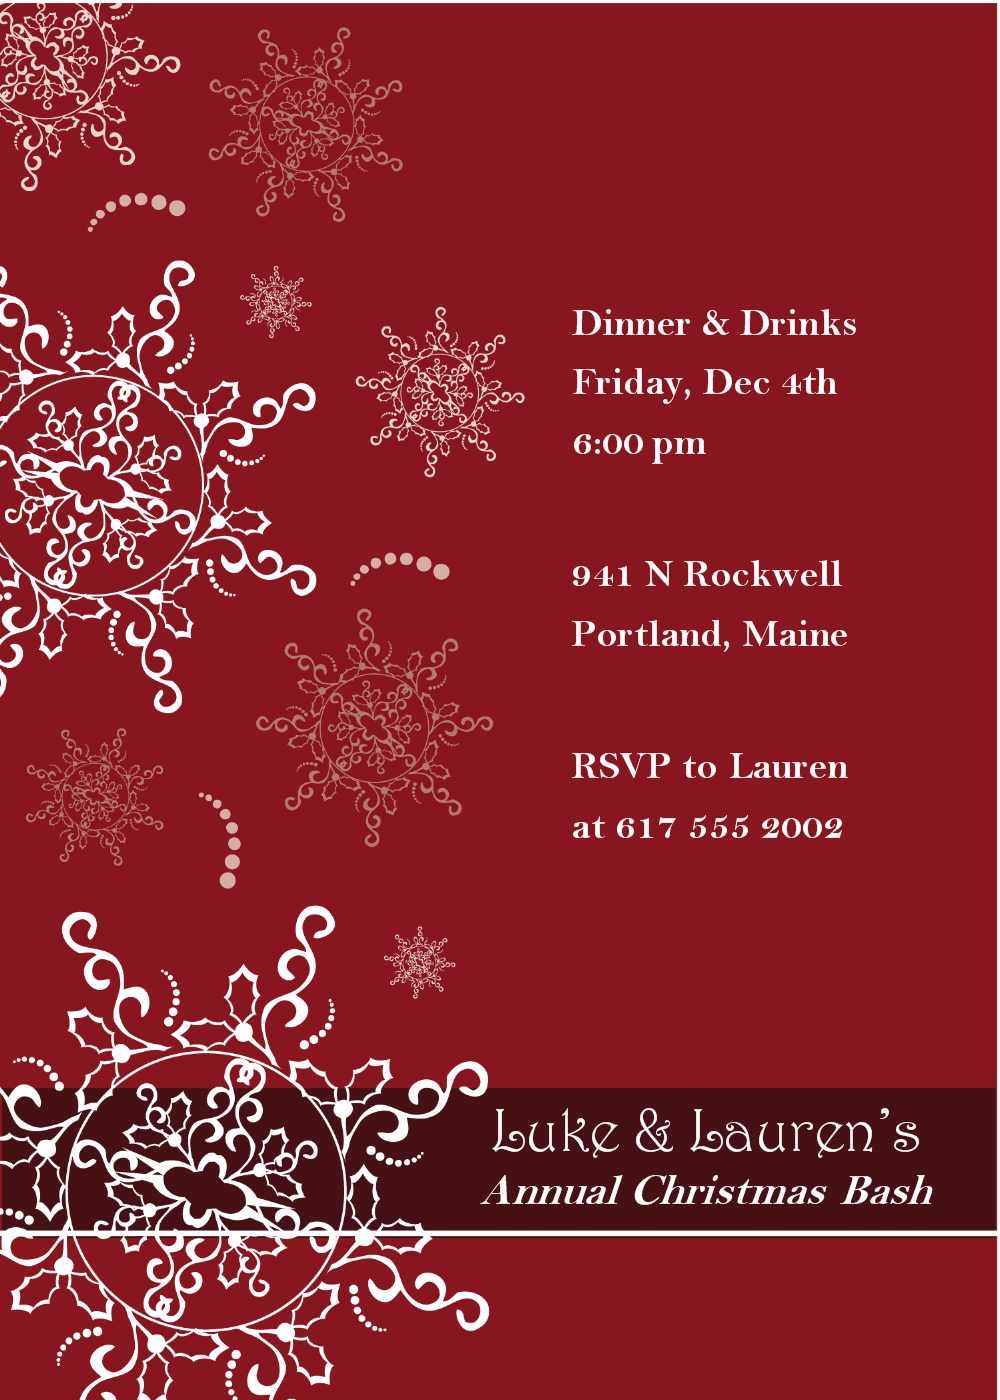 Free Christmas Party Invitations could be nice ideas for your invitation template